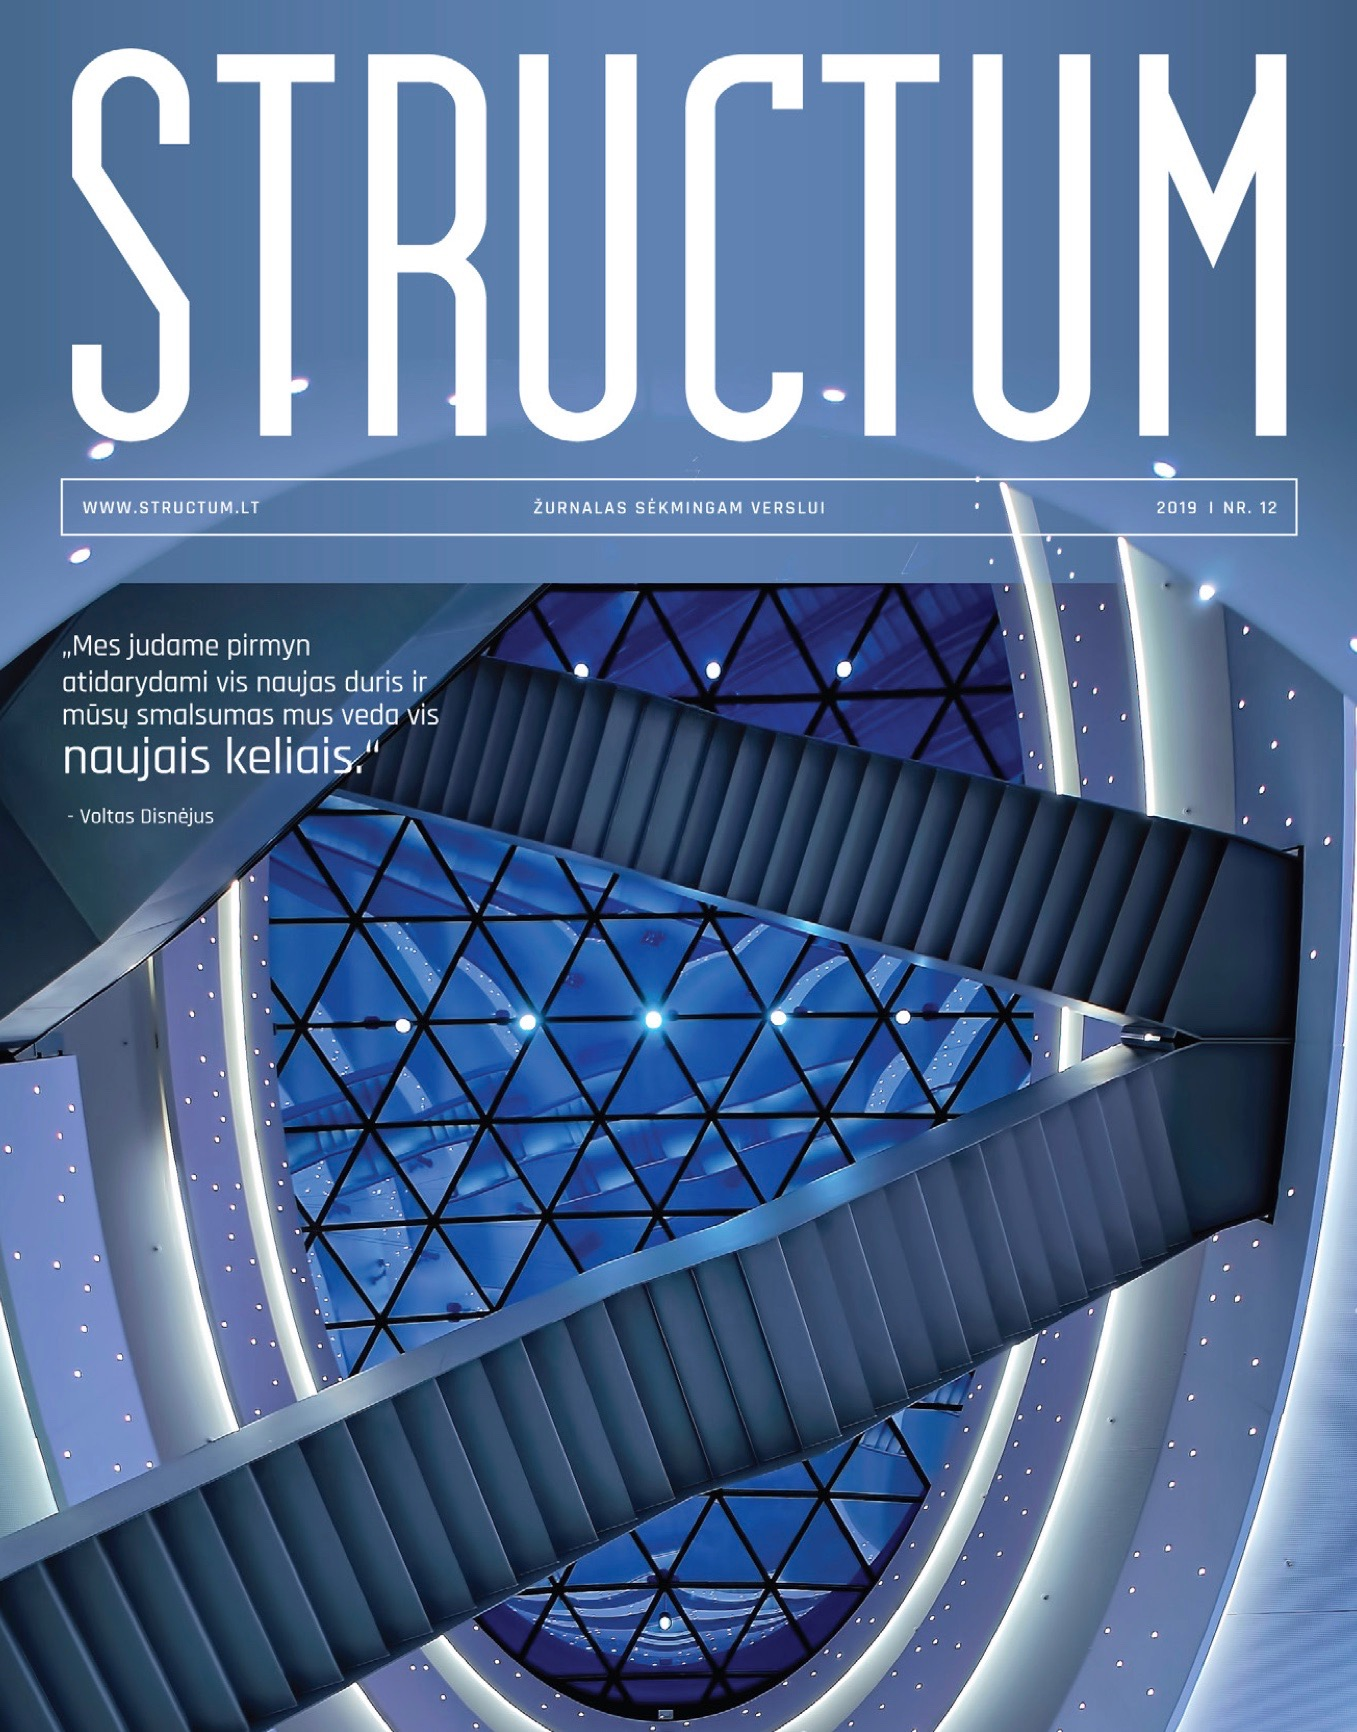 https://structum.lt/wp-content/uploads/2019/12/STRUCTUM_gruodis_WEB.jpeg